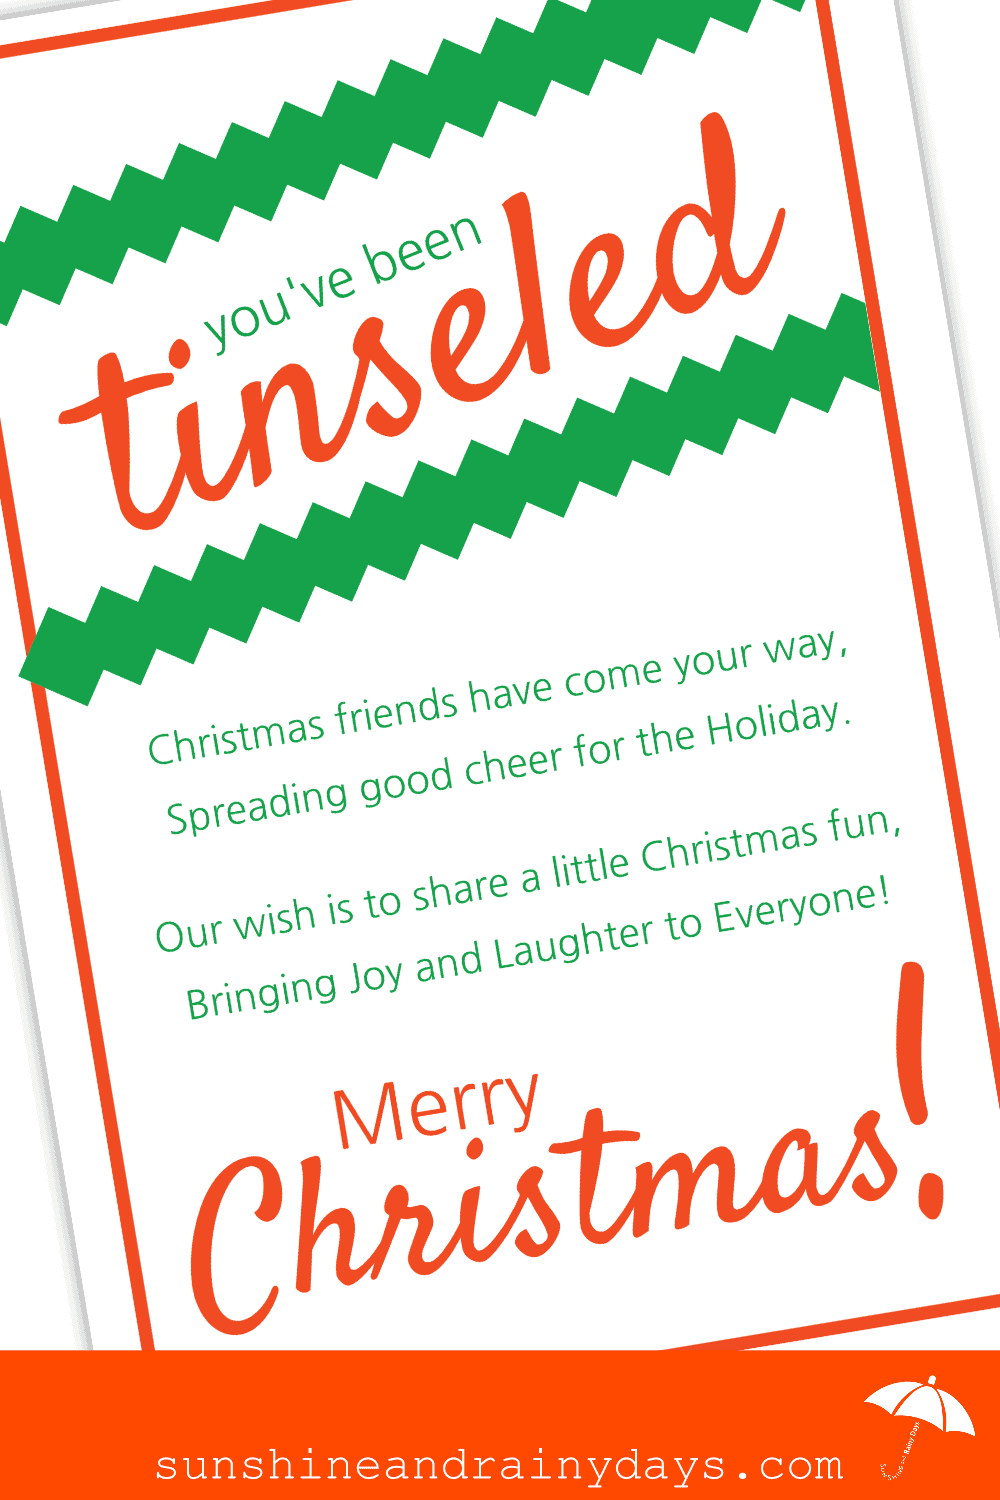 We did it! We Tinseled our Neighbors using our You've Been Tinseled Printable and YOU can too! What is Tinseling, you ask? Tinseling is a bit like doorbell ditching only you leave a gift in the hope to bring Christmas Cheer! #tinseled #Christmas #youvebeentinseled